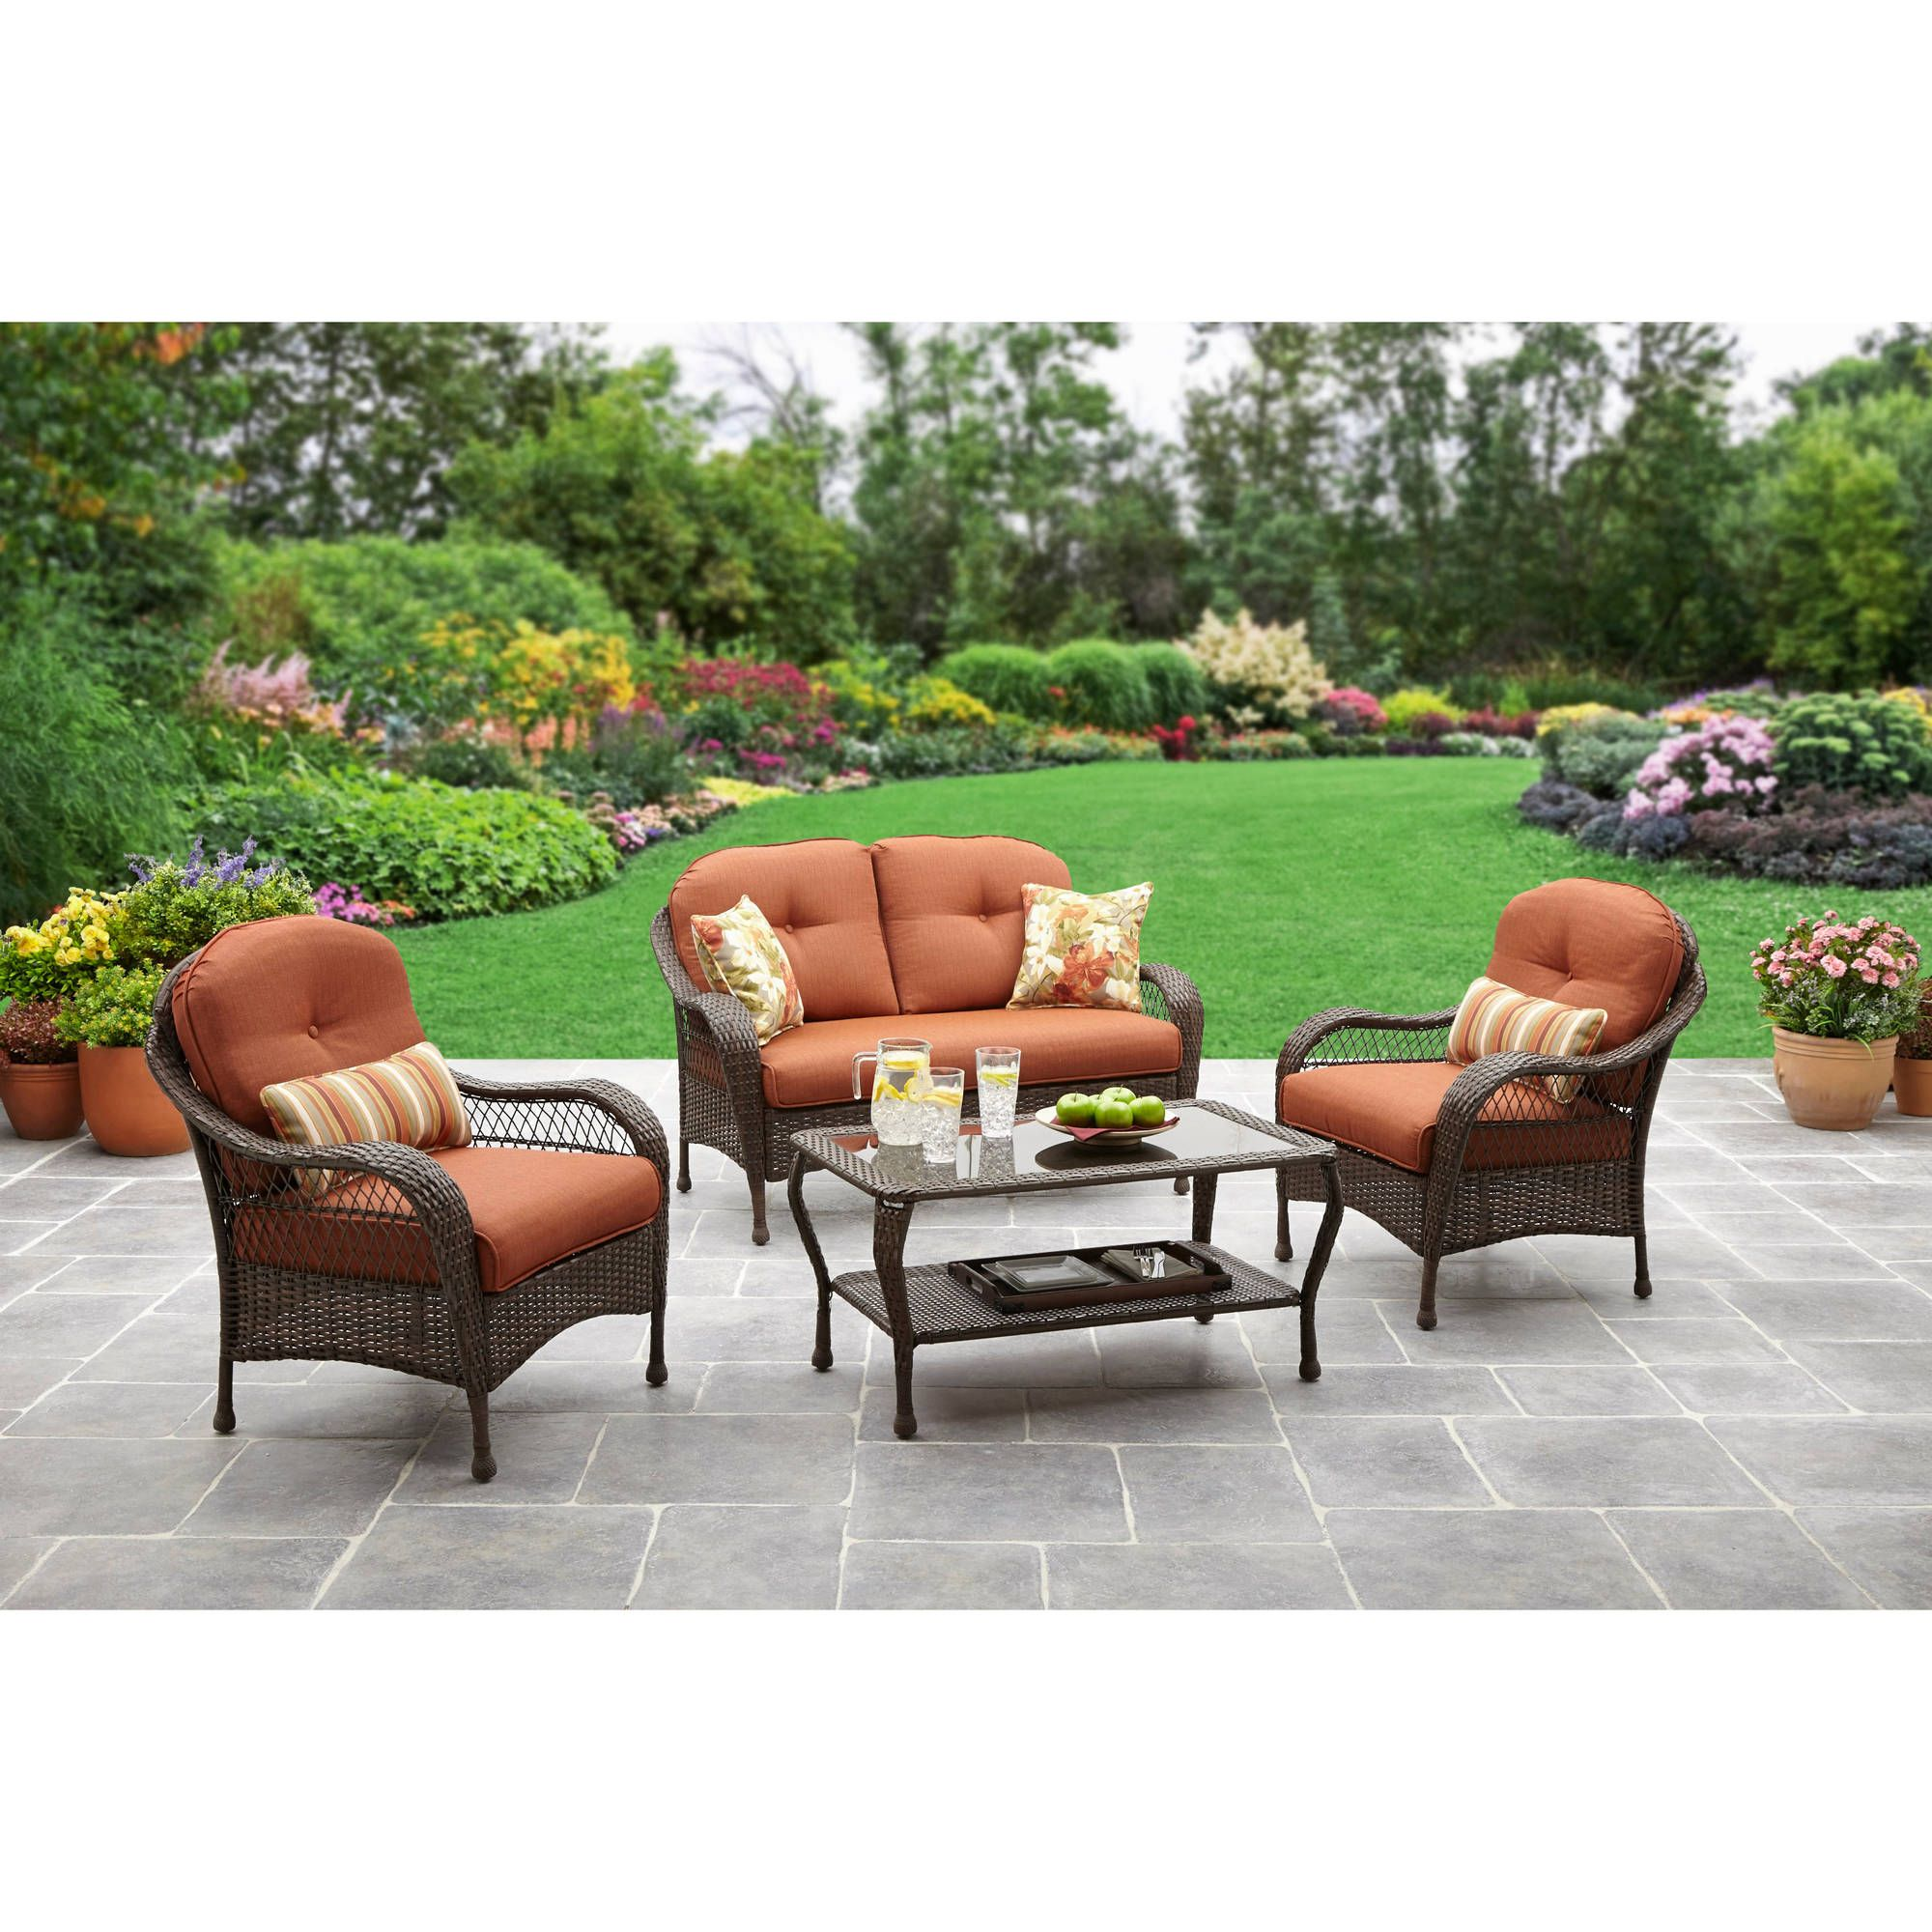 walmart patio cushions better homes gardens Home Garden. Better Homes And Gardens Patio Furniture Replacement Cushions